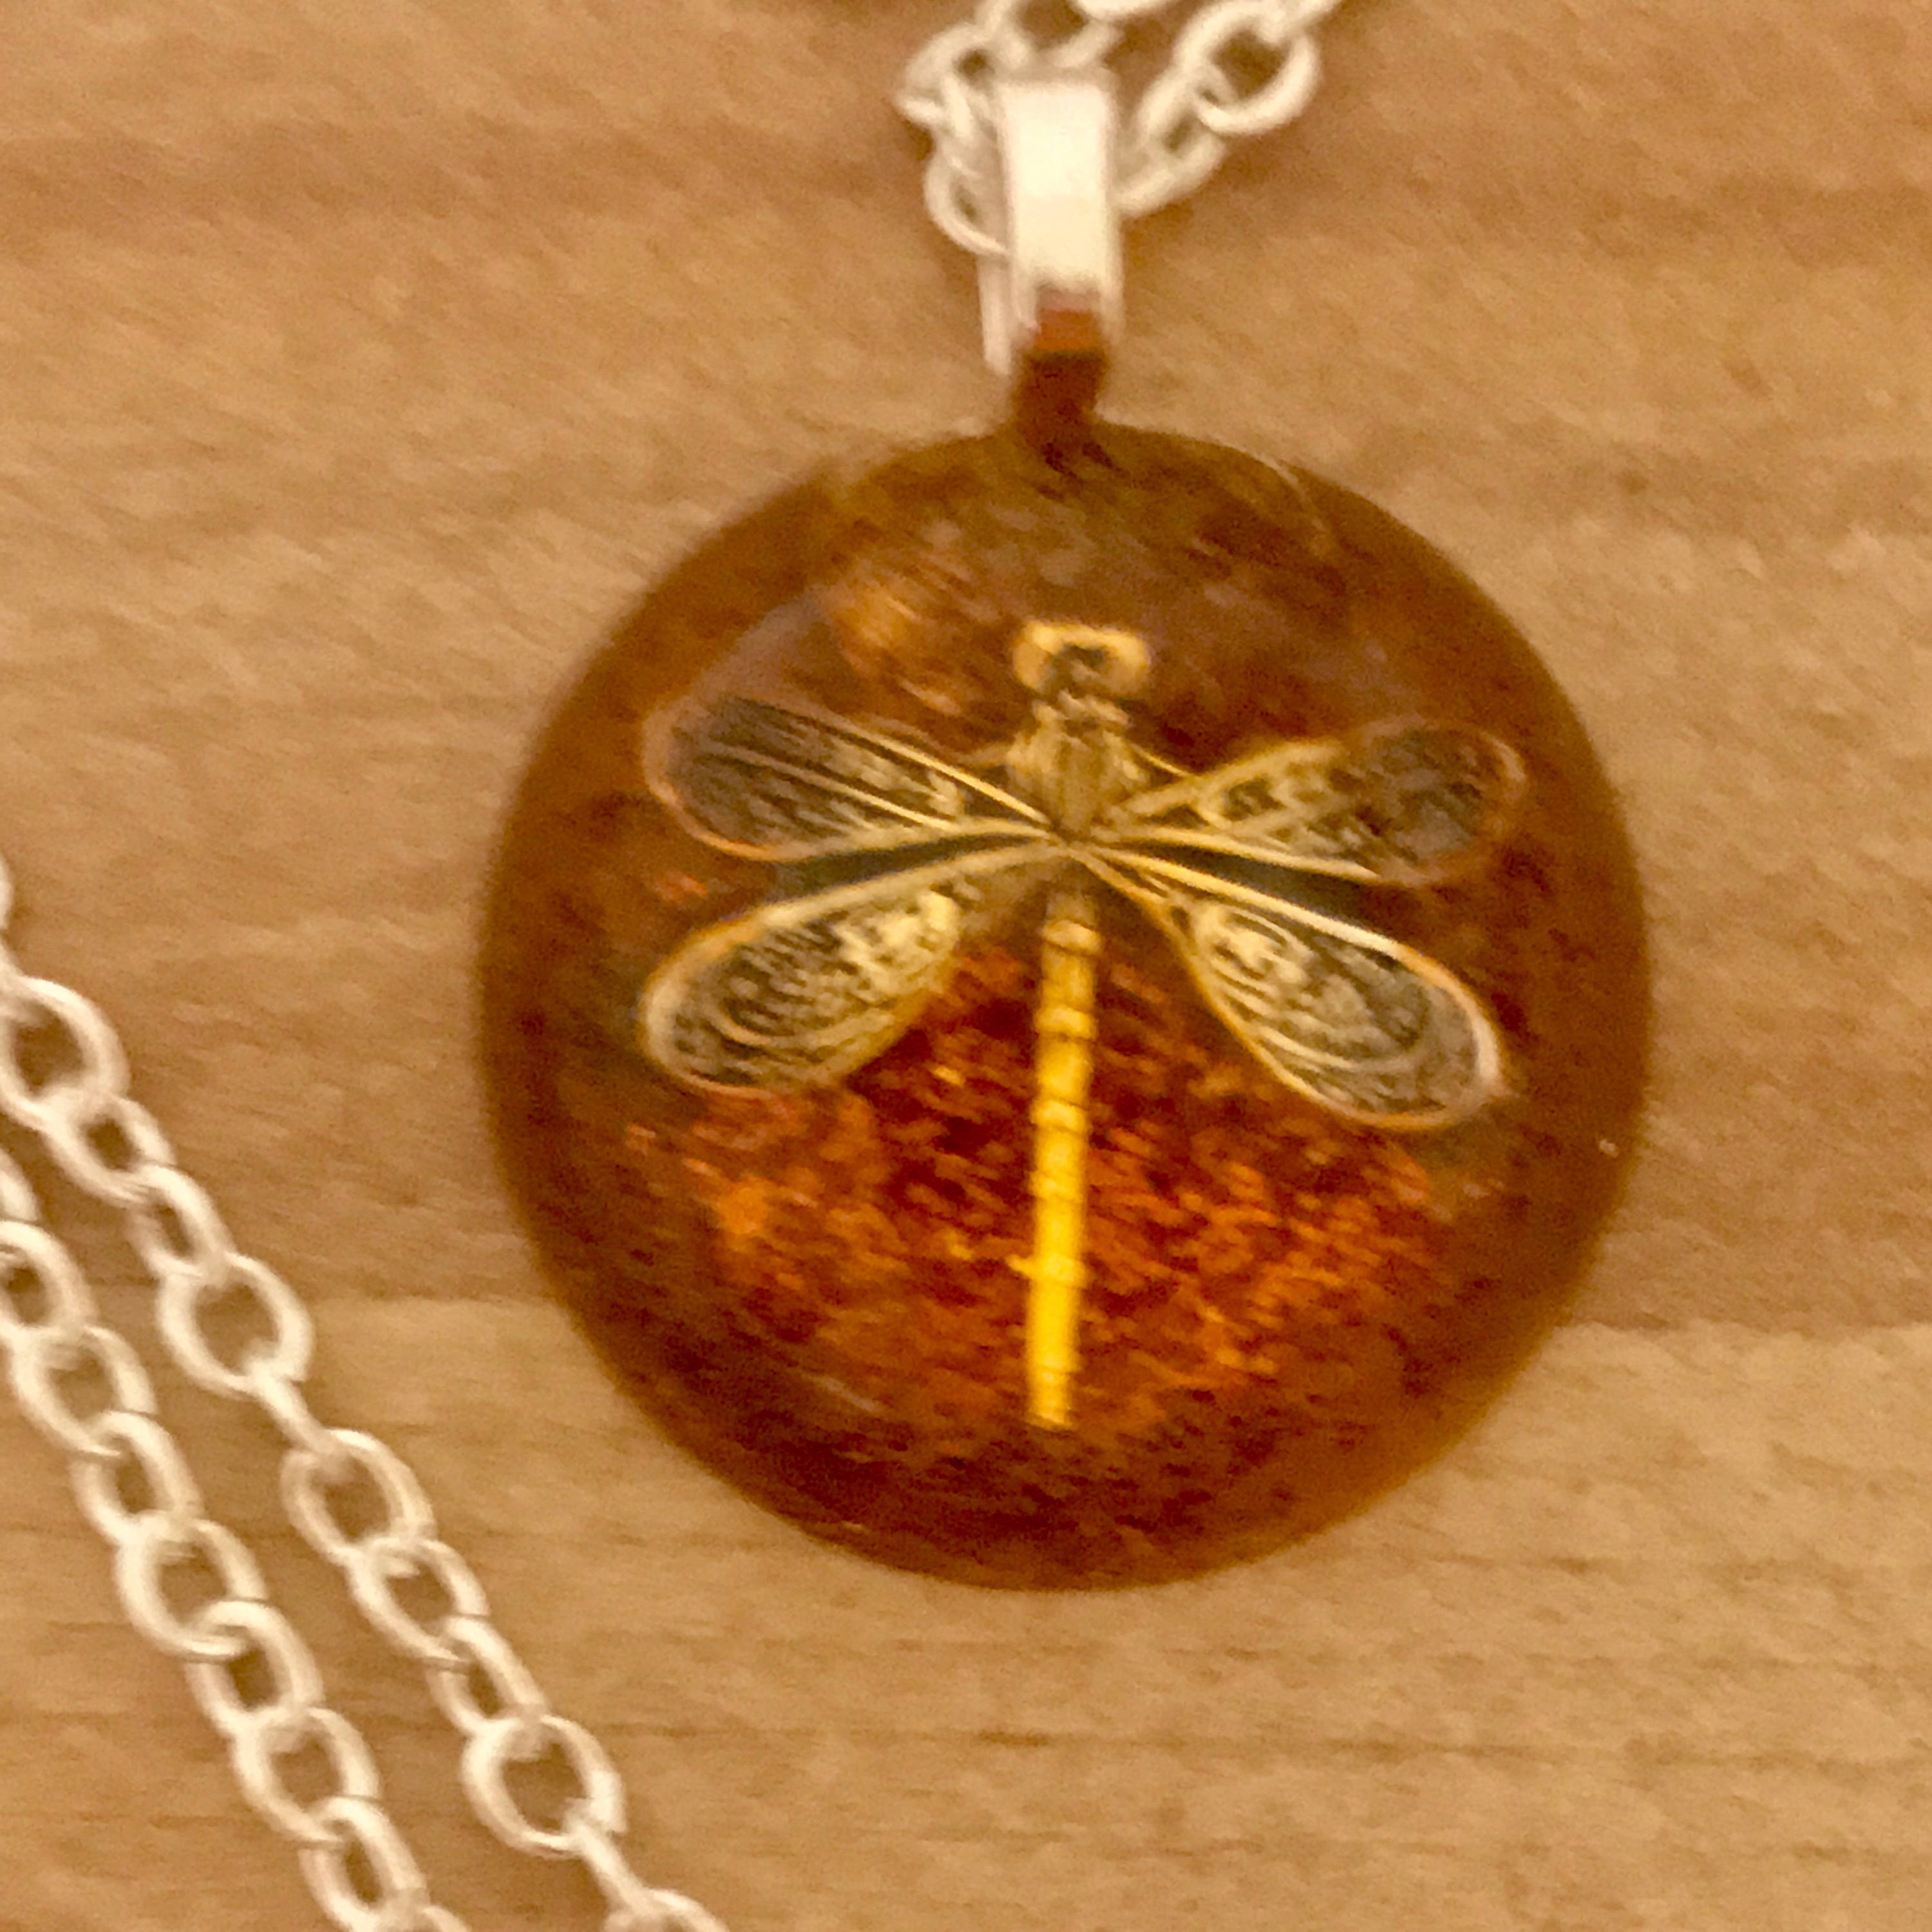 Small Round Pendant Dragonfly In Amber Resin Pendants